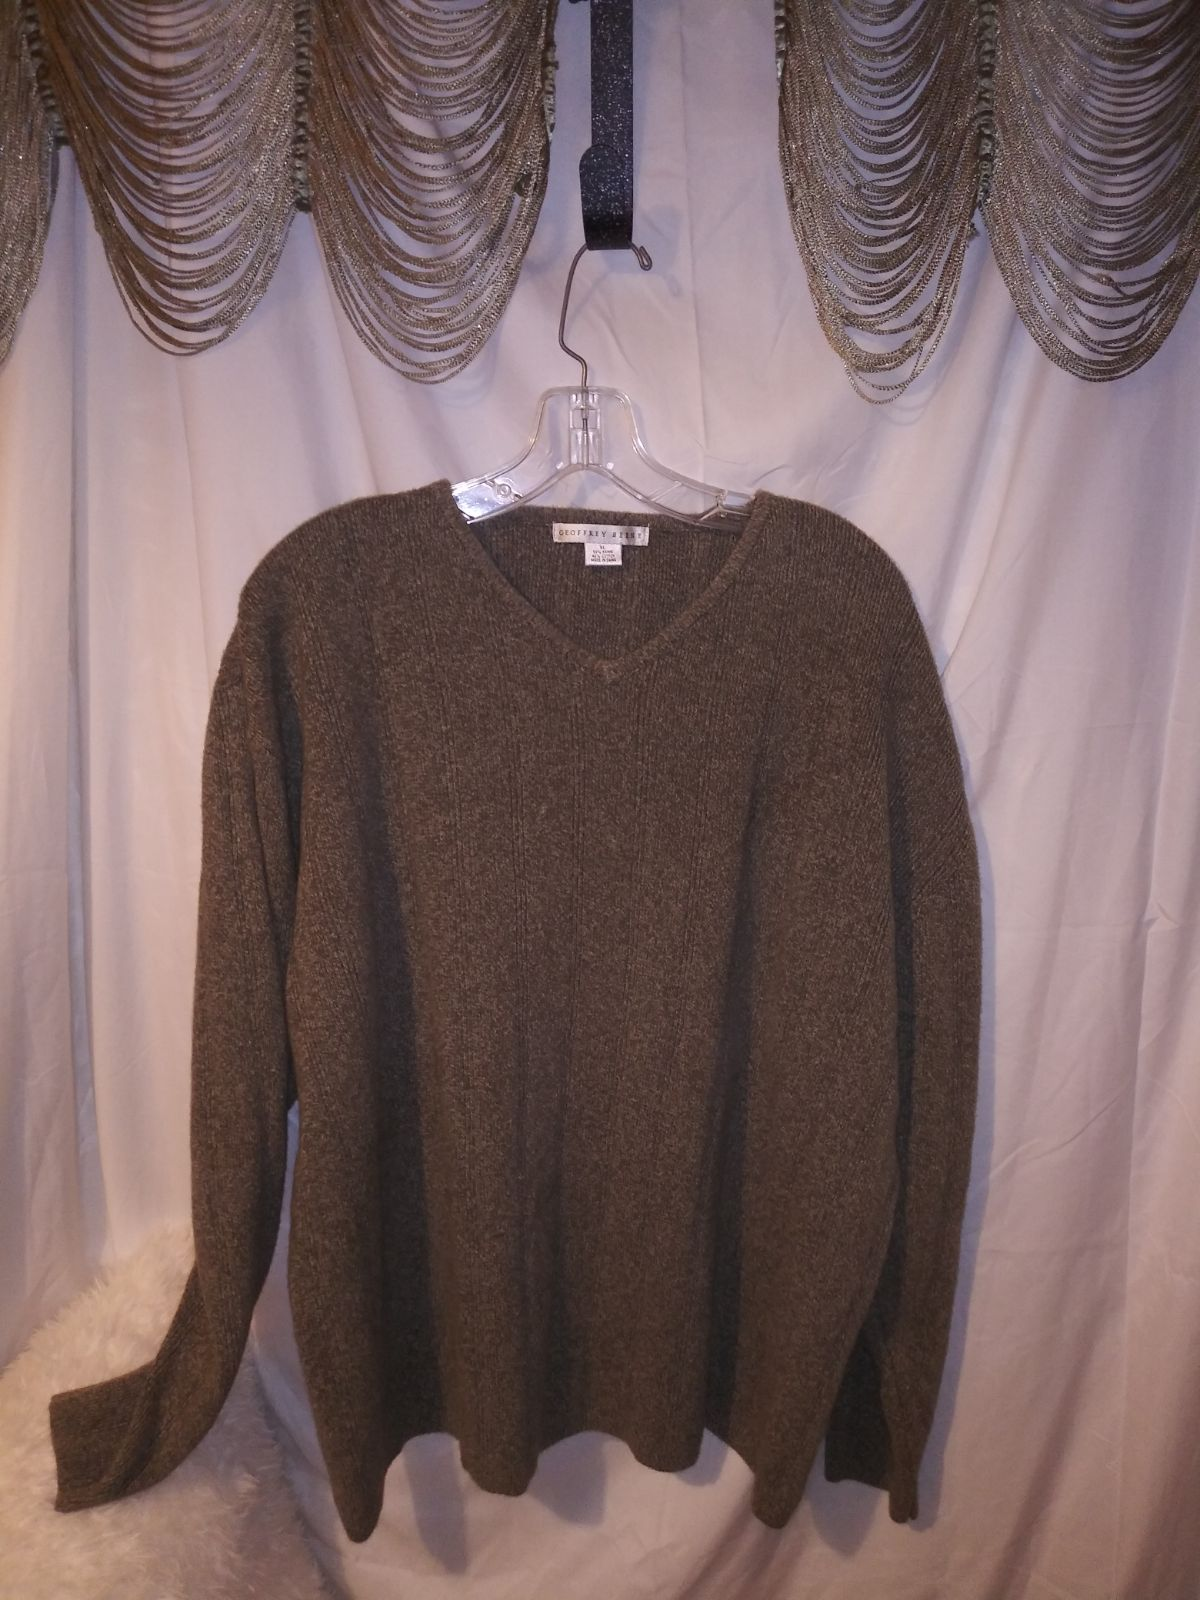 Geoffrey Beene men's sweater size XL